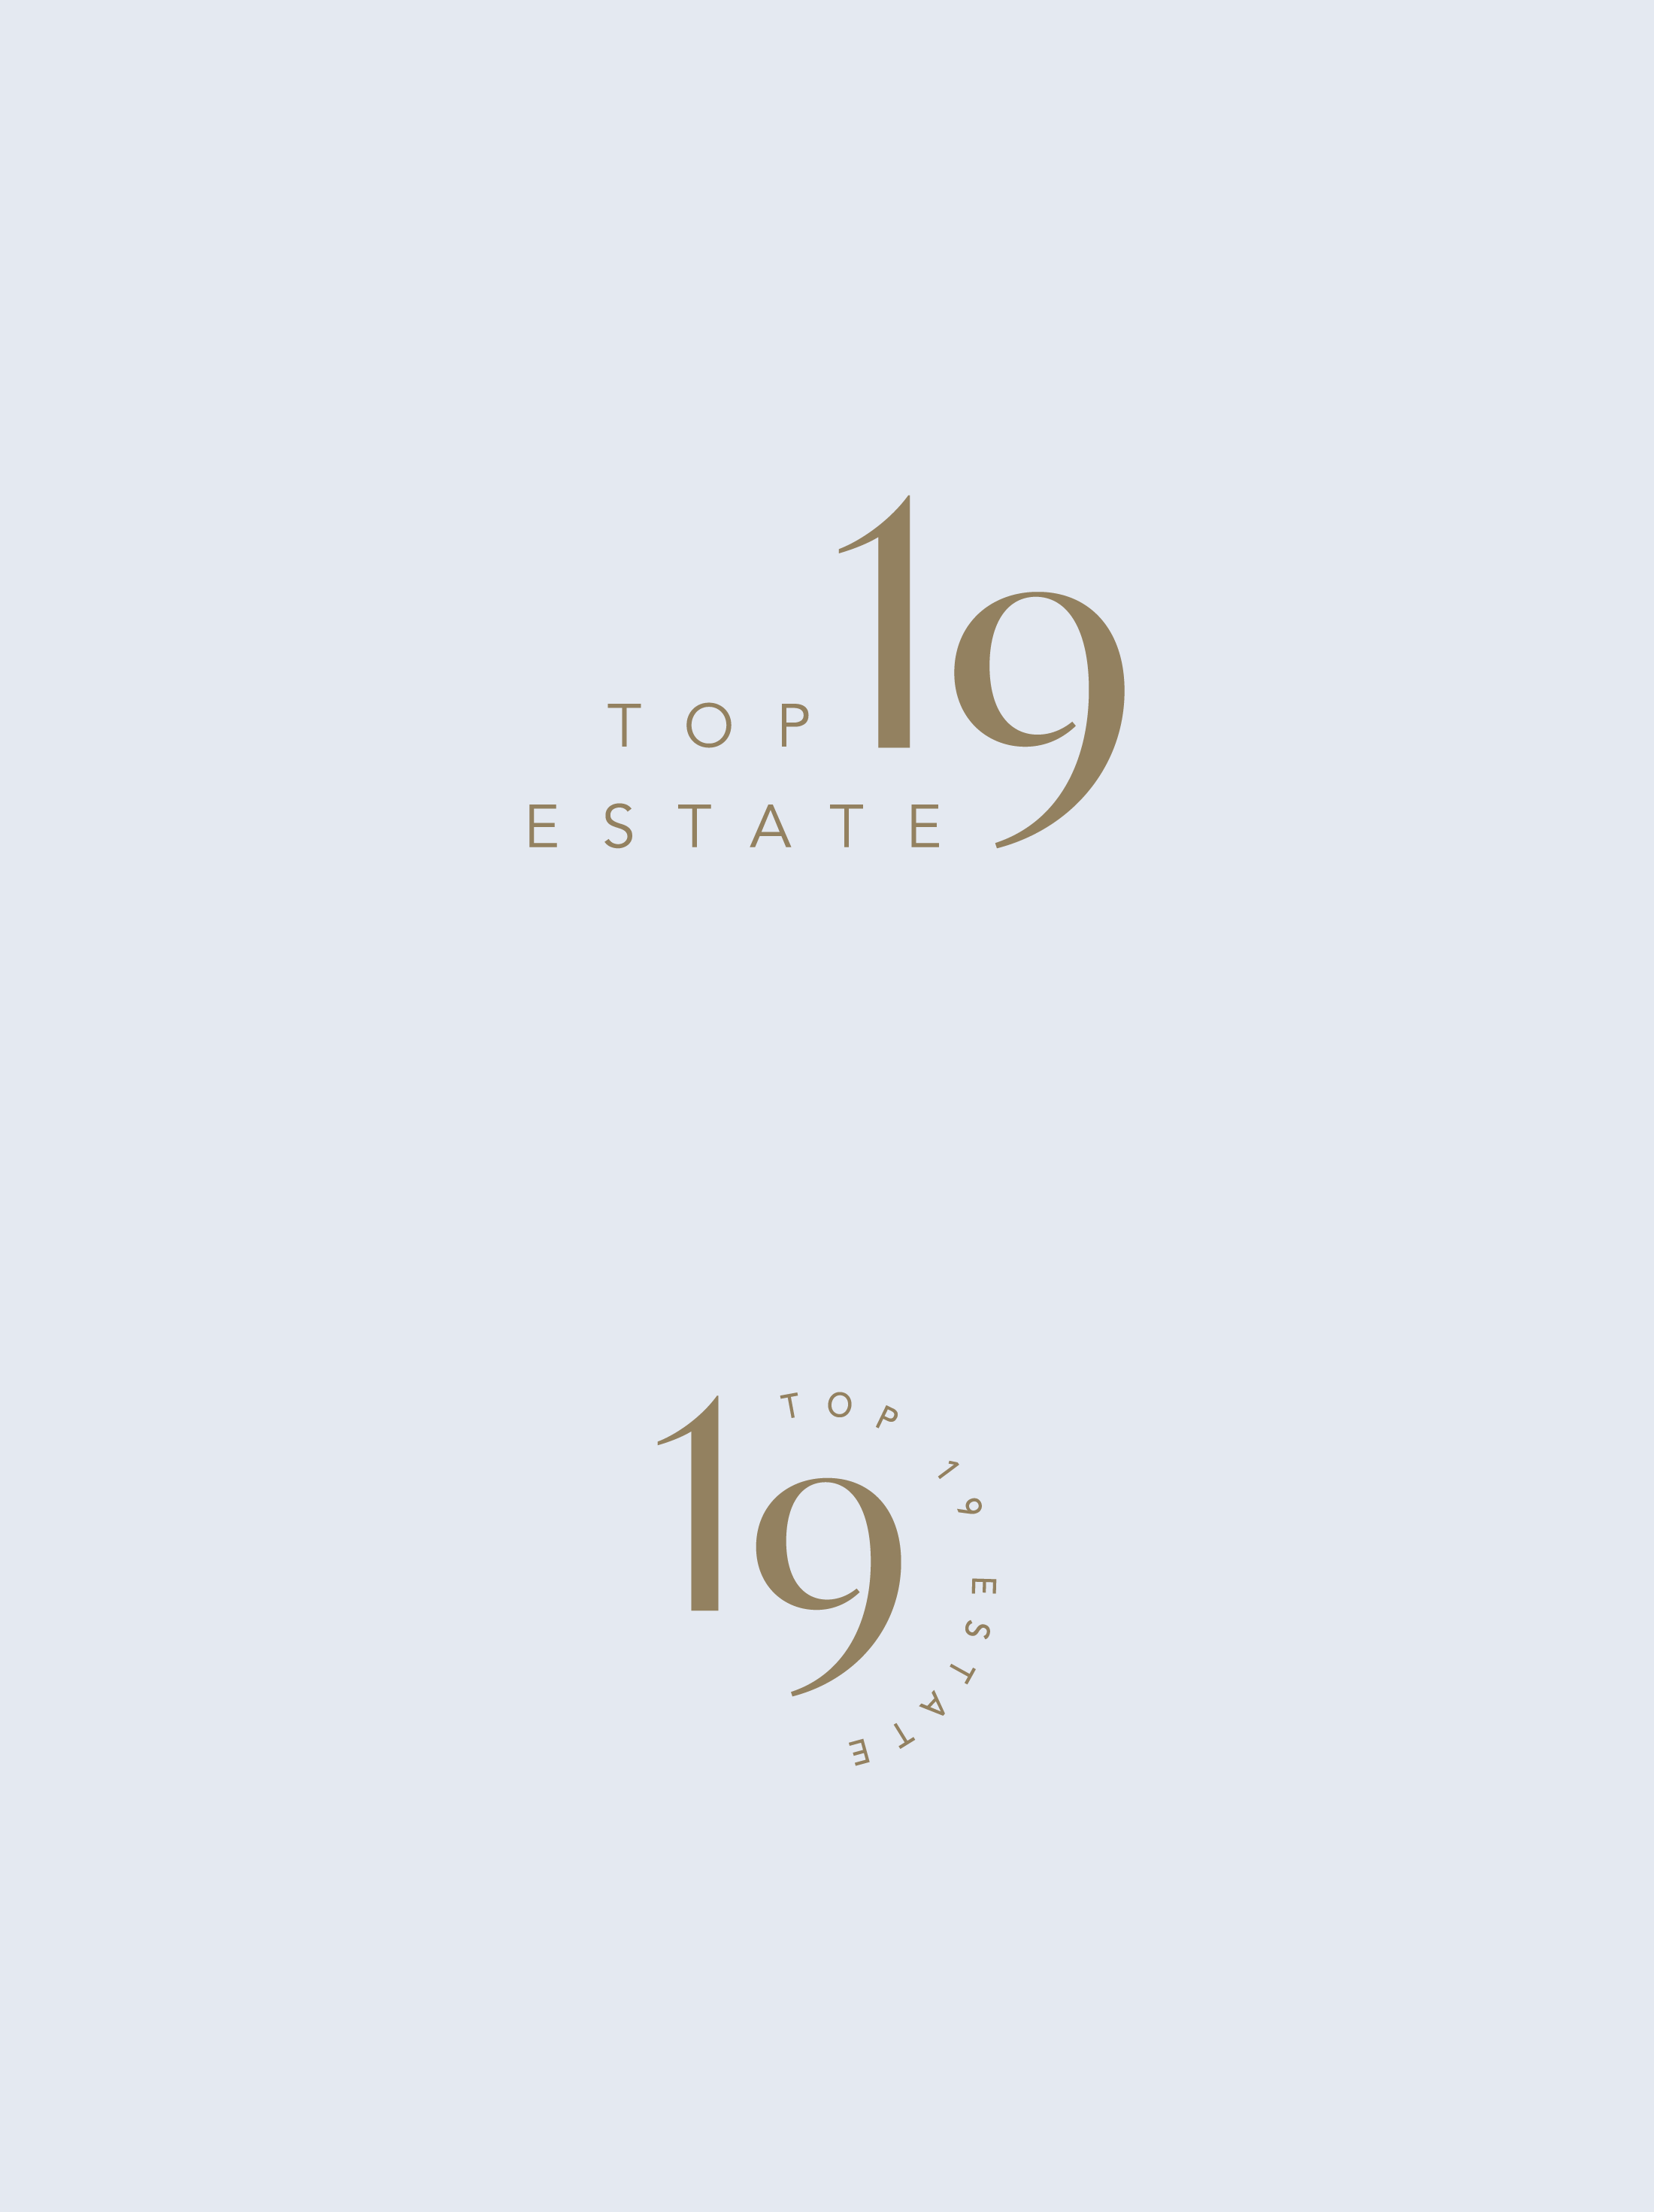 Top19Estate_AmysAtelier_Logo_Brand_Design_Vienna.jpg